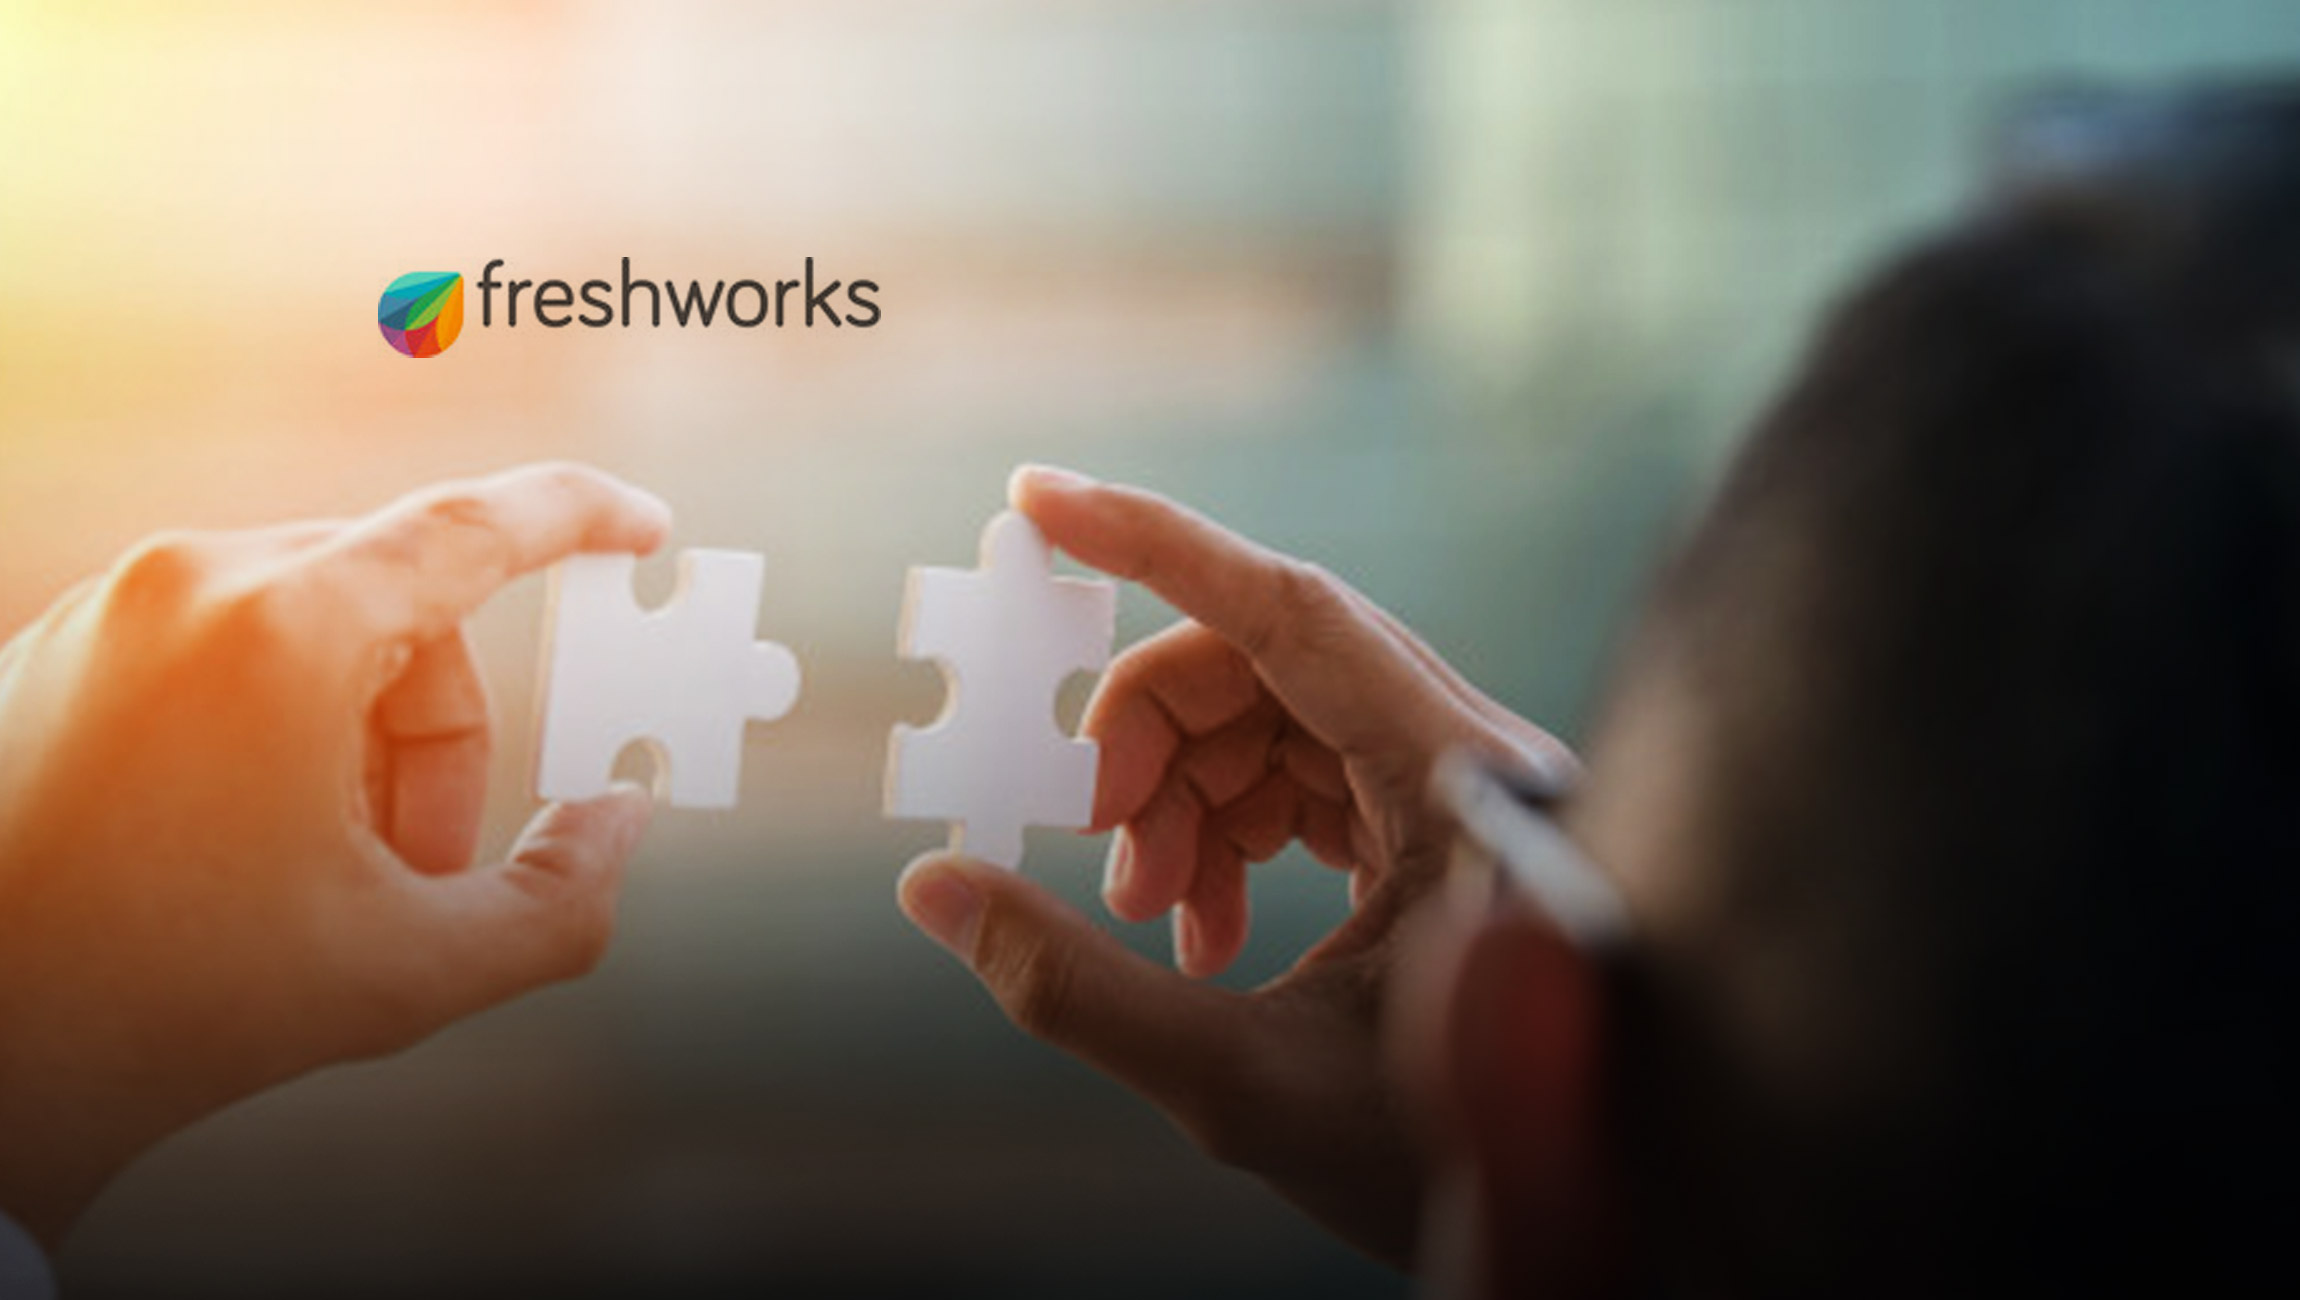 Freshworks Completes Key Acquisition With Flint to Strengthen Intelligent Automation for It Teams